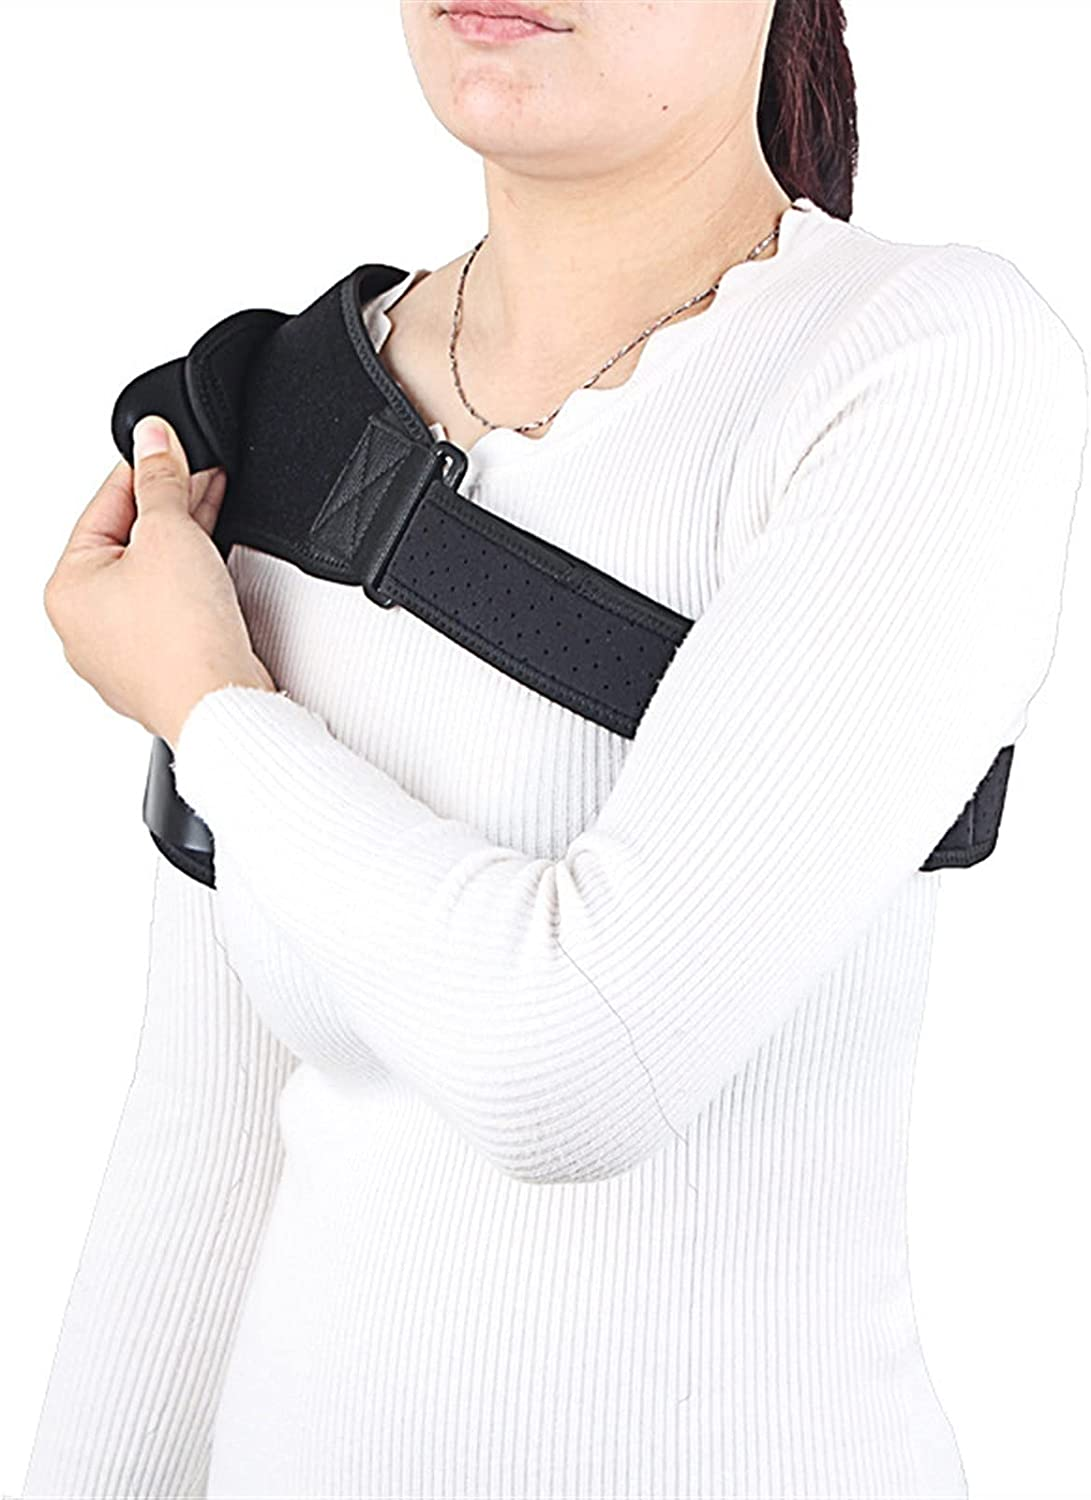 HTTDD excellence Daily bargain sale Shoulder Brace Relieve Pain Women for Men and wi